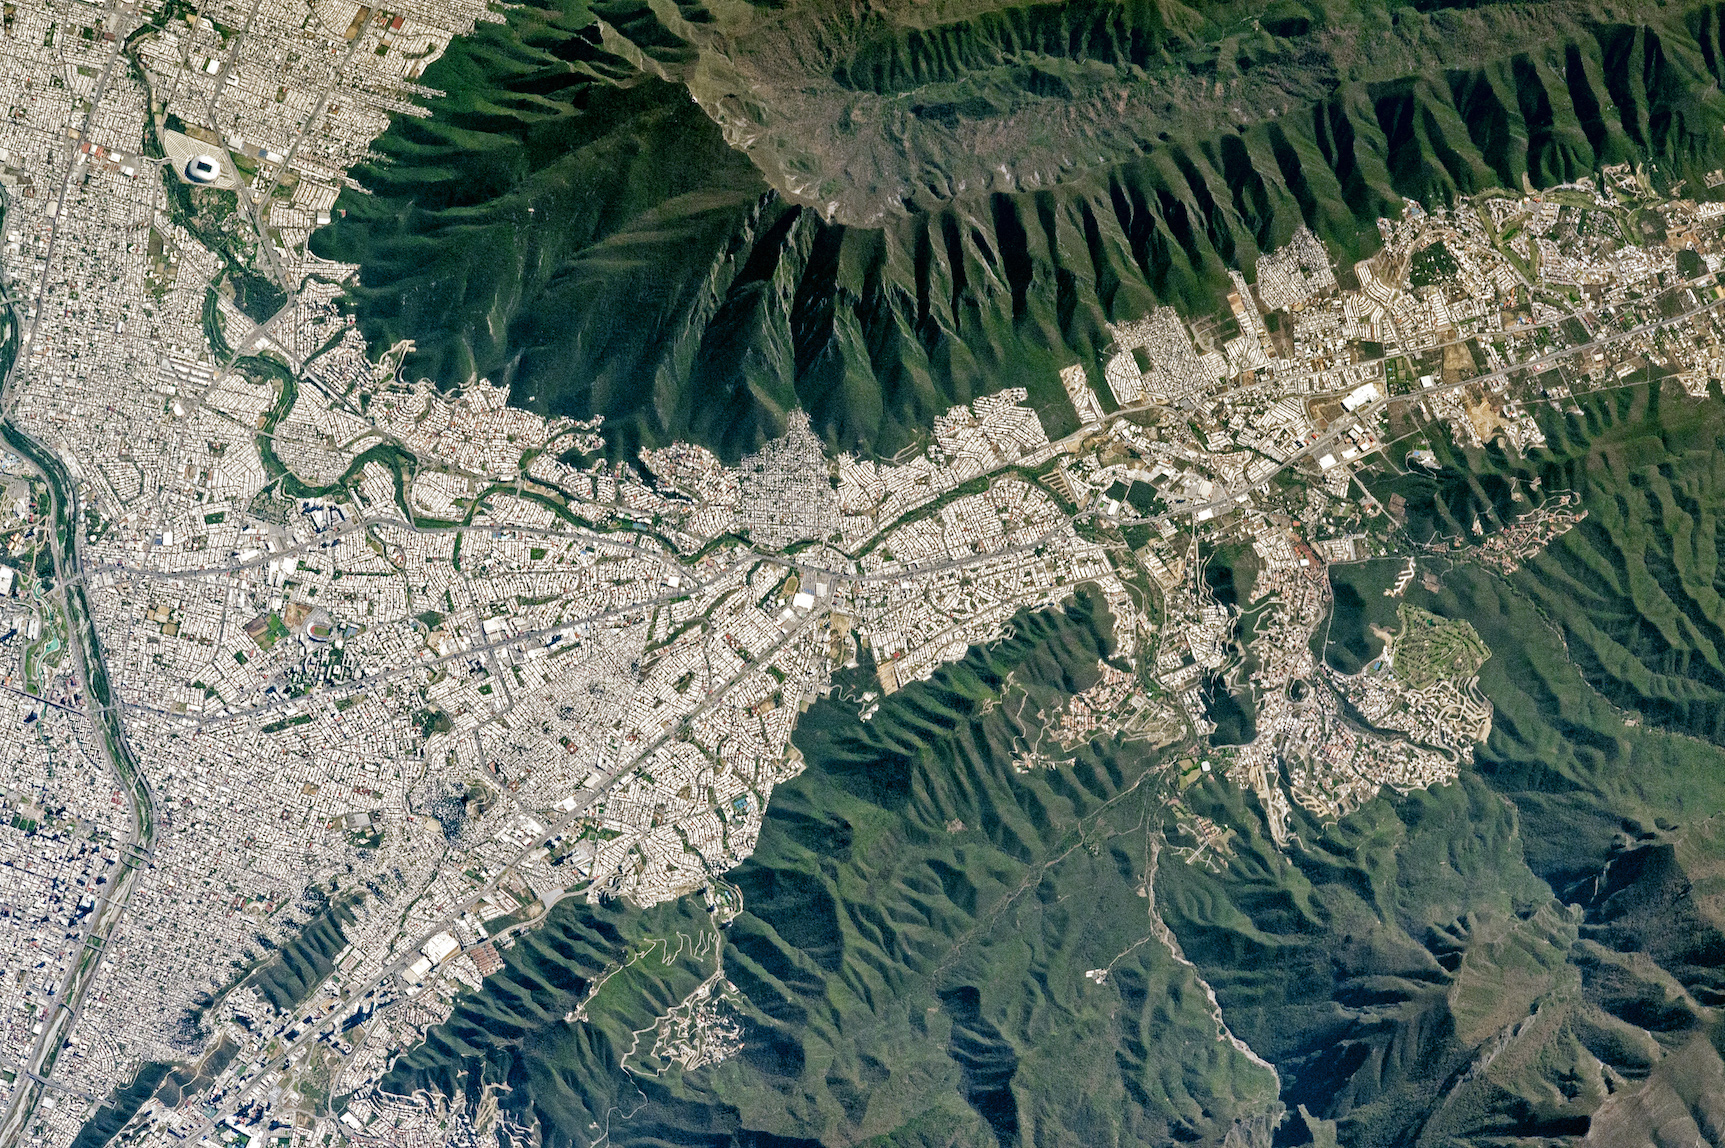 Today's Image of the Day comes thanks to the NASA Earth Observatory and features a look at Monterrey, the capital of of the Mexican state of Nuevo Leon.